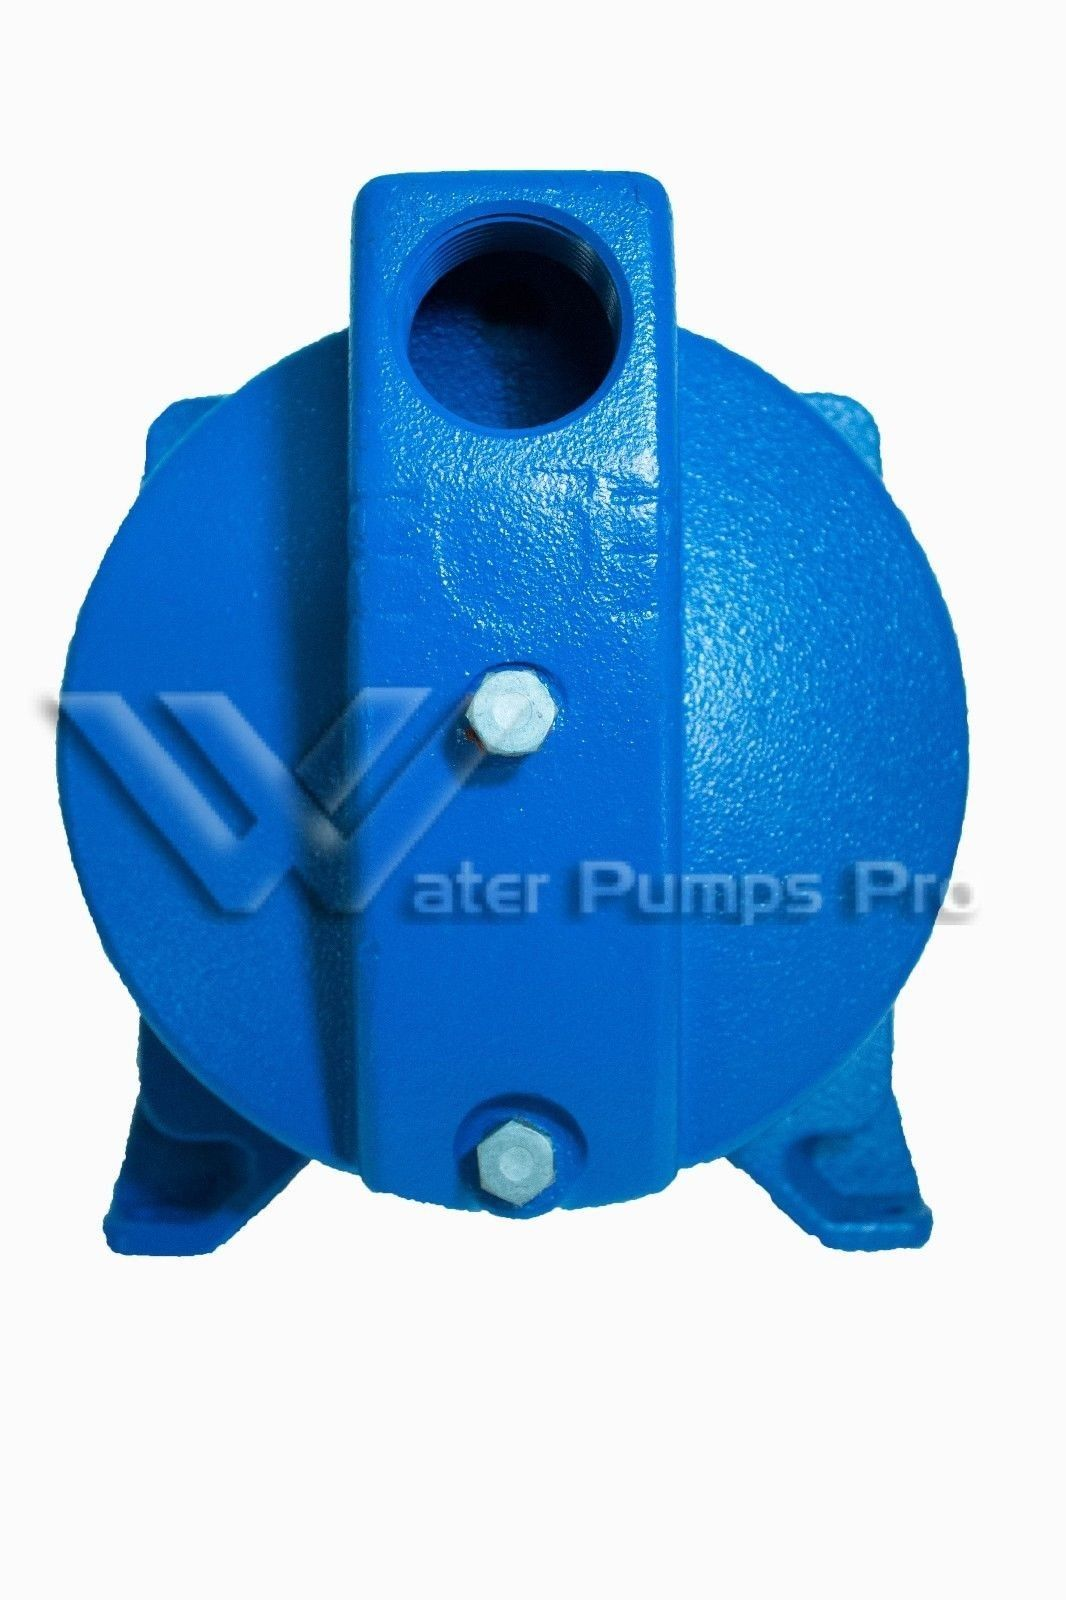 1k333 Goulds Pump Casing For J5s 1 2 Hp Shallow Well Jet